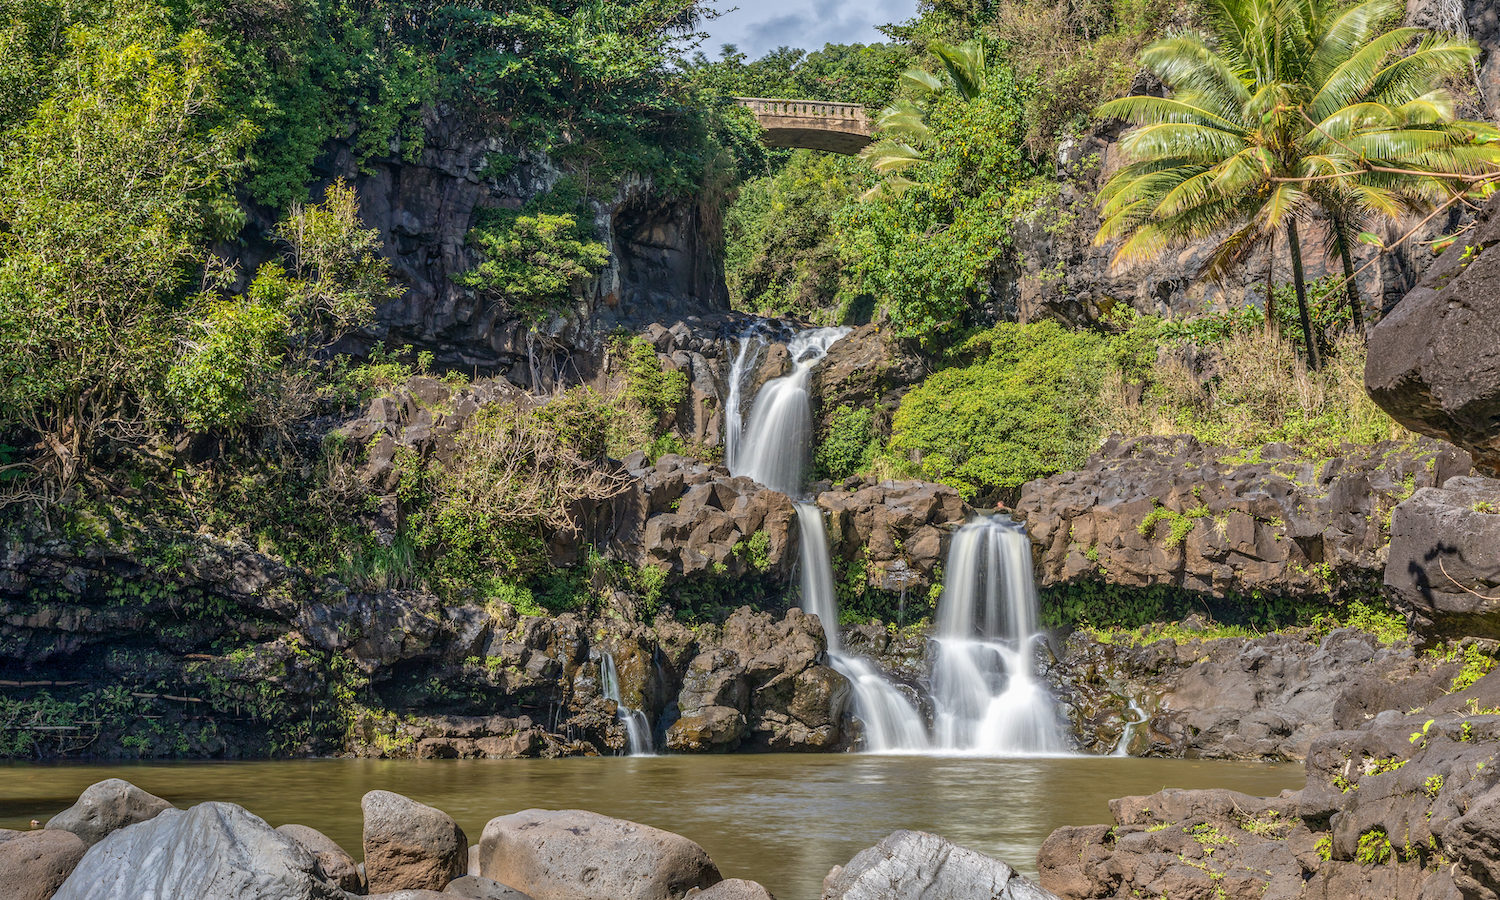 Seven Sacred Pools, Road to Hana GyPSy Guide Narrated Driving Tour App